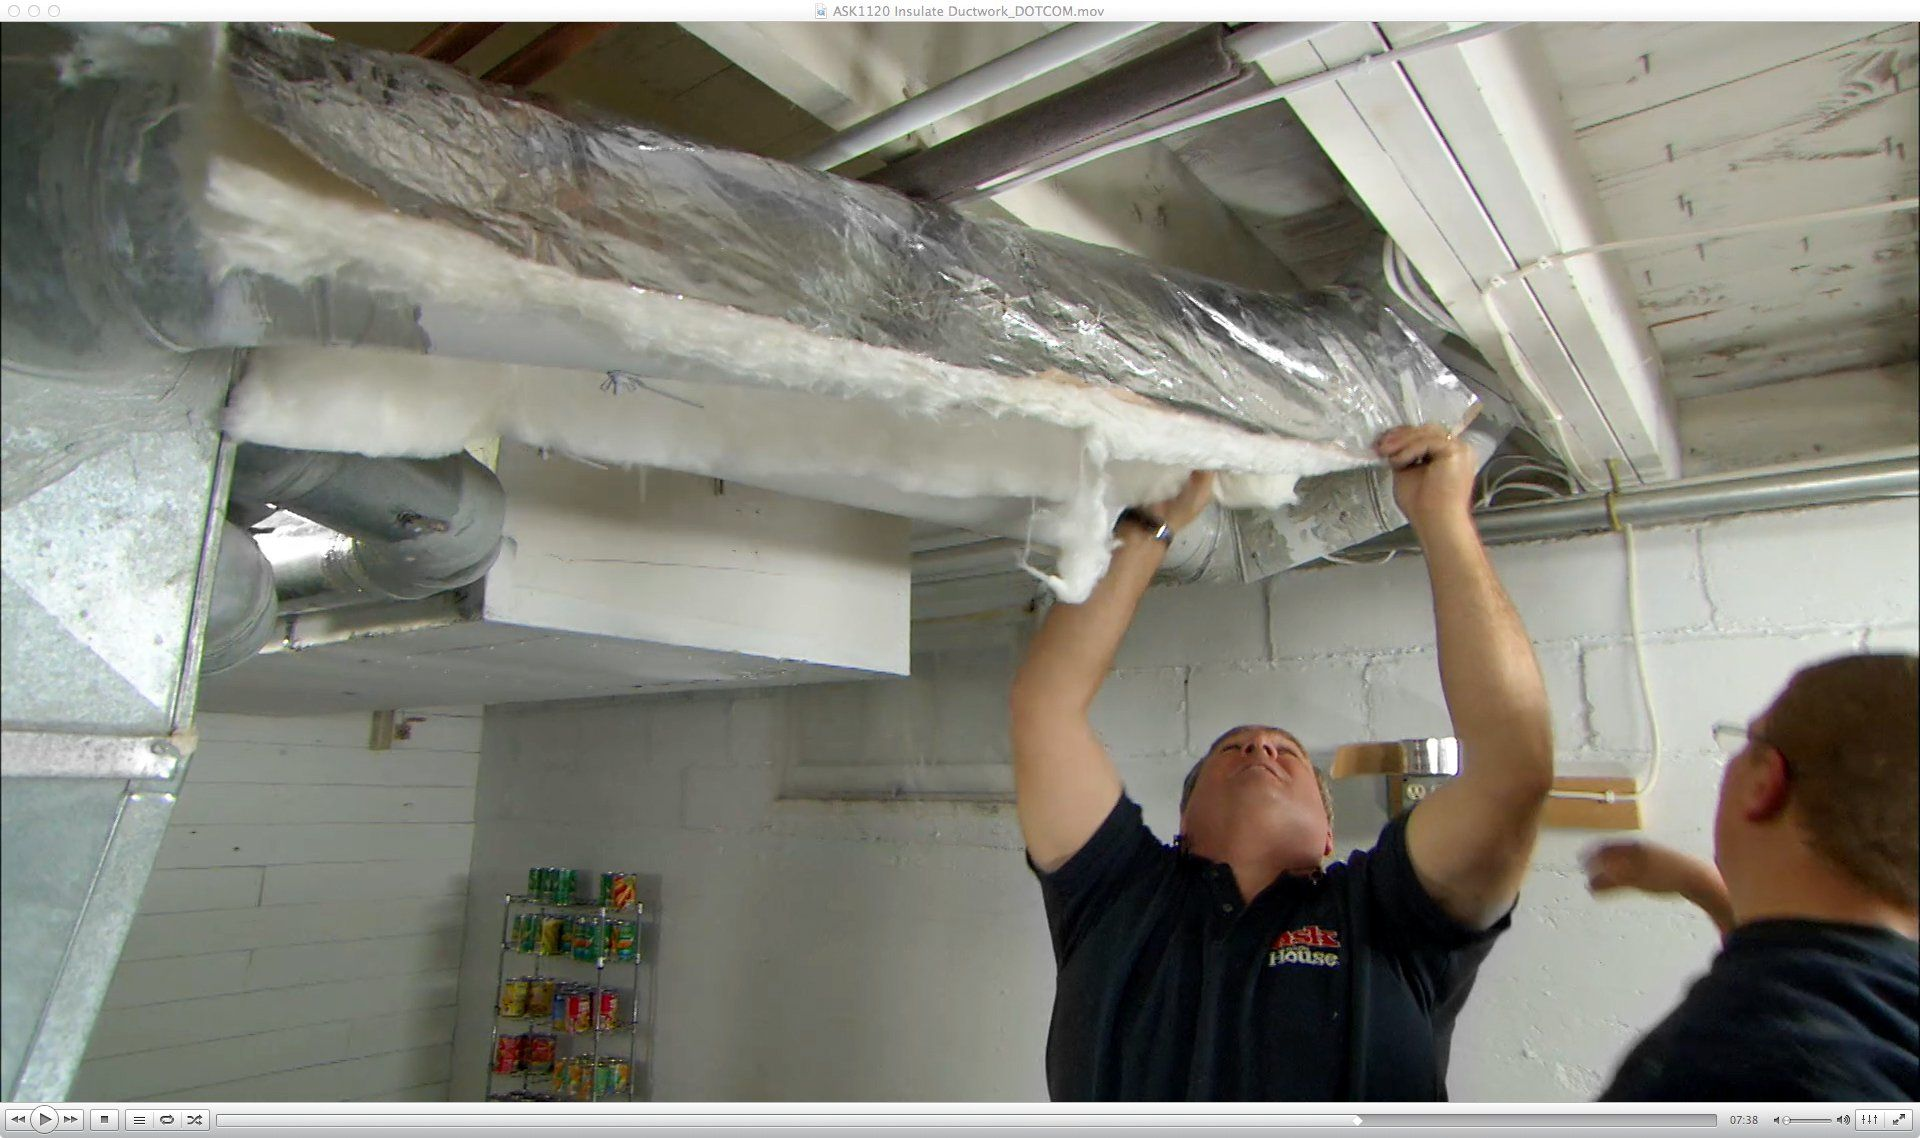 How To Insulate Ductwork Duct Work Old Houses Diy Insulation